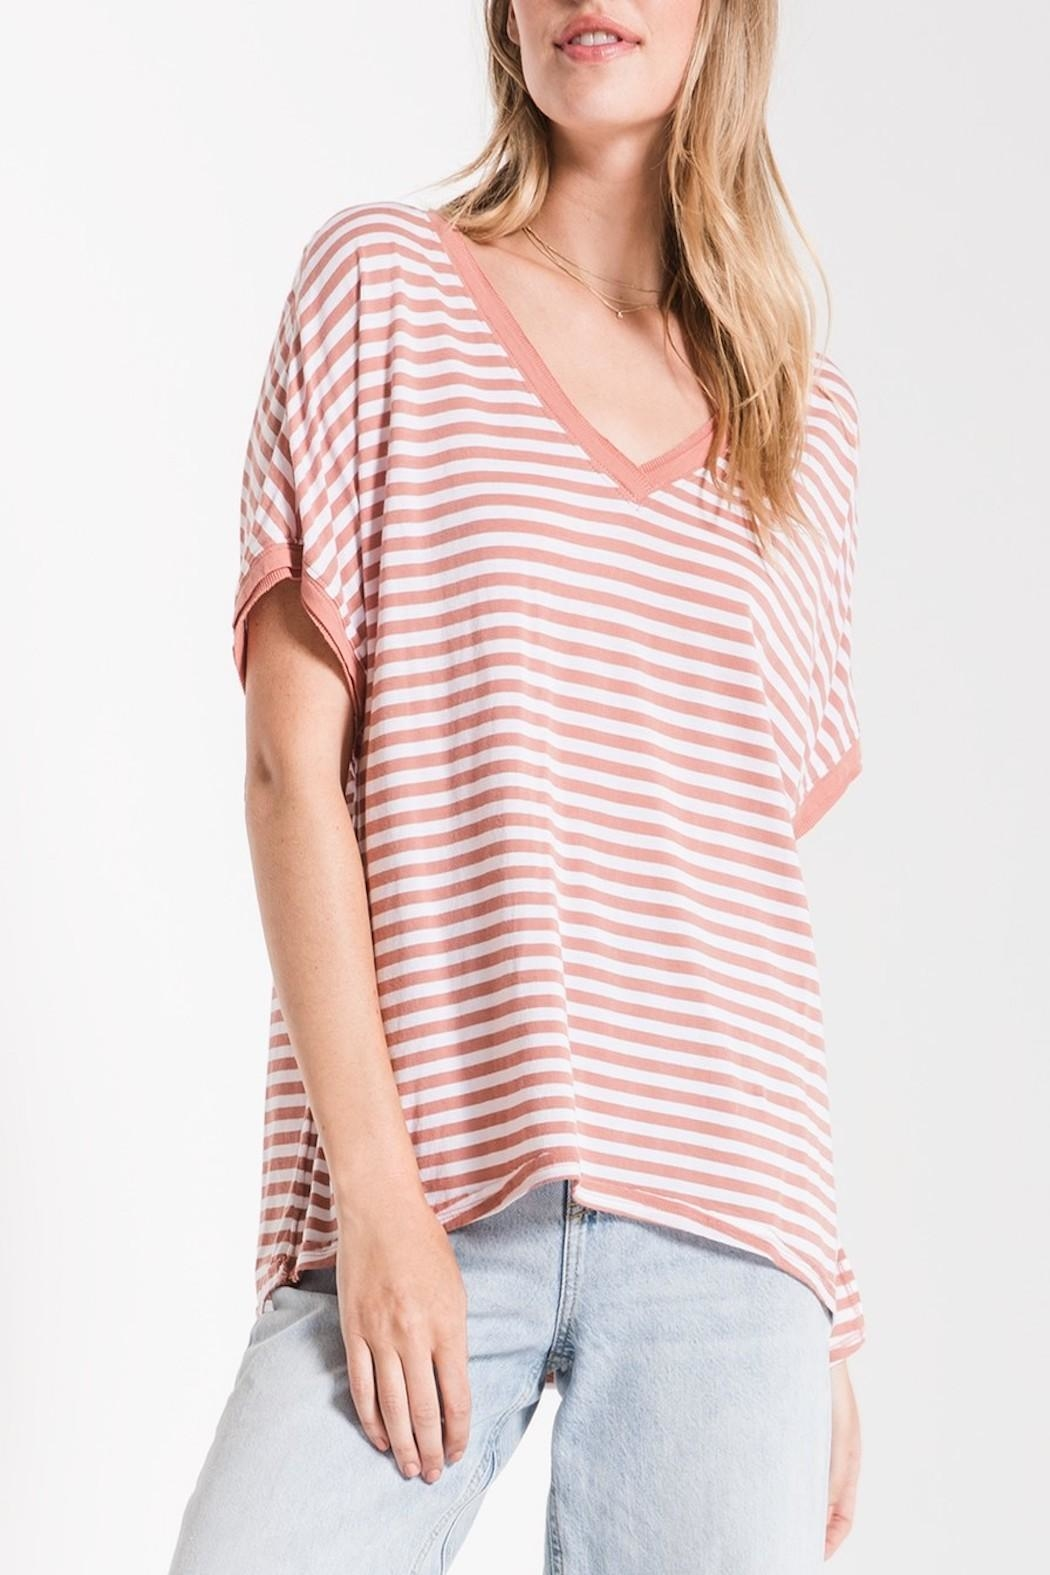 Apricot Lane St. Cloud Striped Bf-Tee-Rose - Main Image